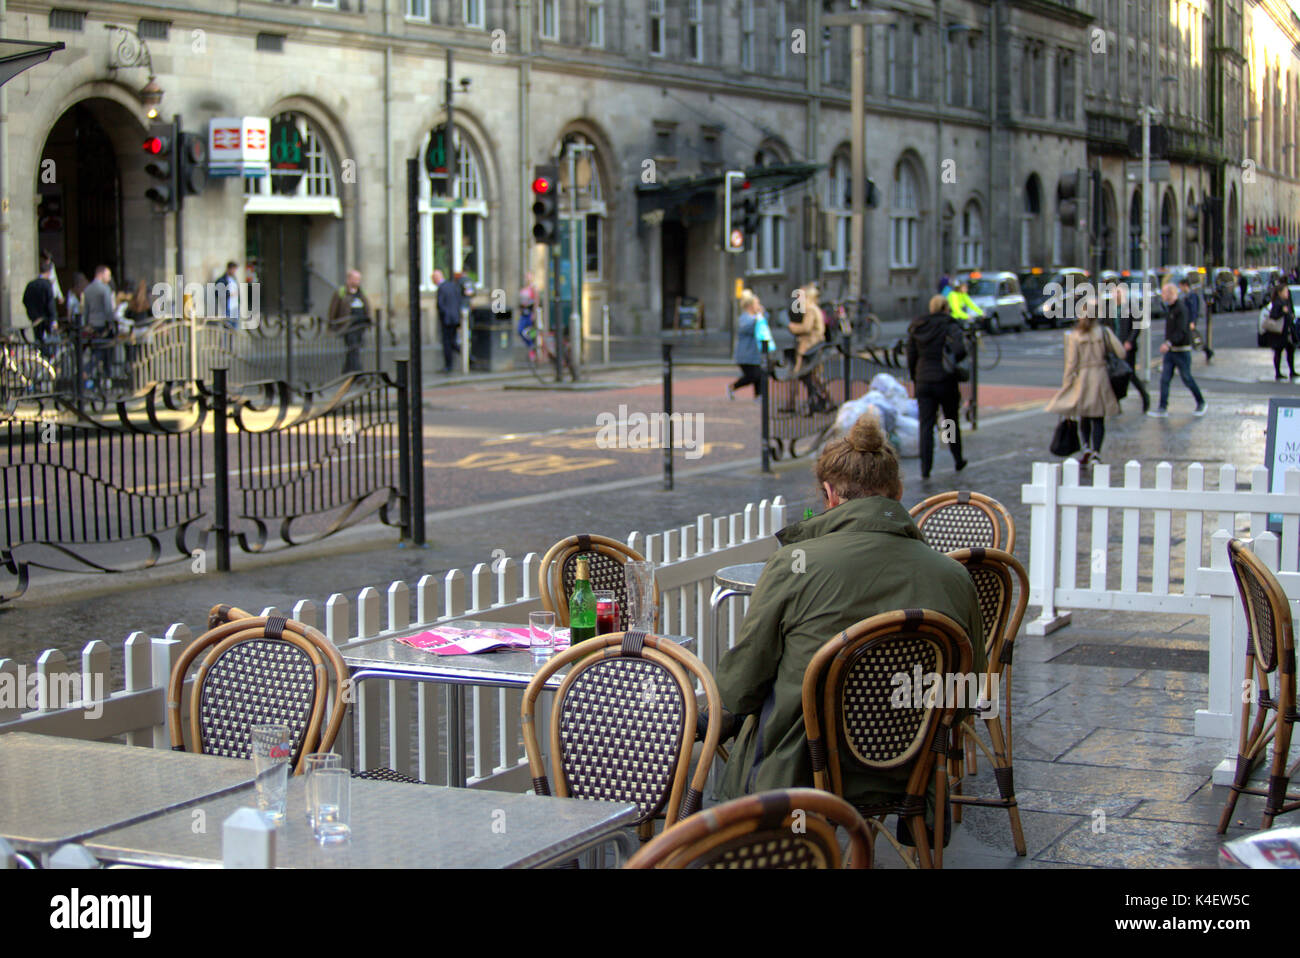 central station SIDE ENTRANCE on pollution hotspot  hope street Glasgow busy street - Stock Image